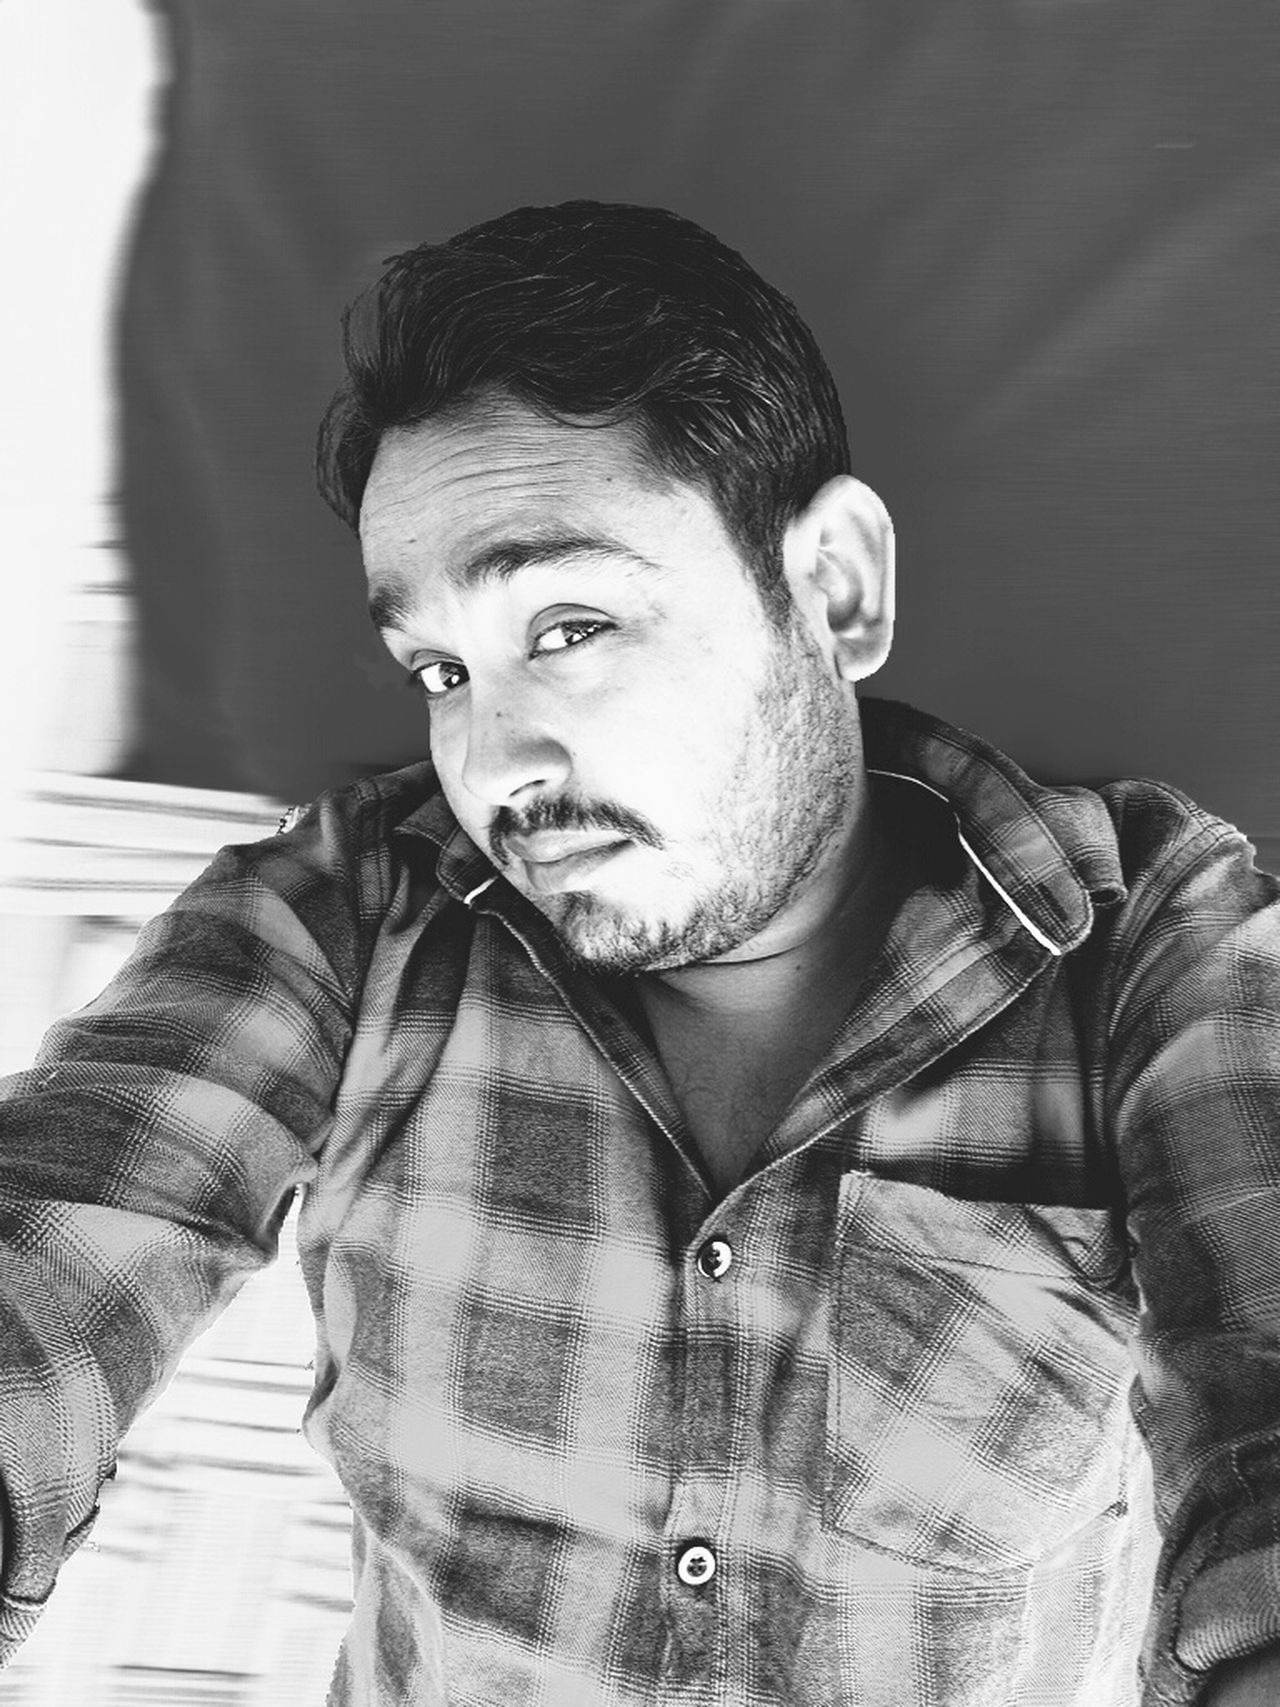 DSLR DSLR Photography Blackandwhite Black And White Blackandwhite Photography Selfie✌ Selfie ✌ Selfie ♥ Self Potrait One Person Only Men Beard One Man Only Portrait Waist Up Lifestyles Front View Close-up Indoors  Human Body Part Real People